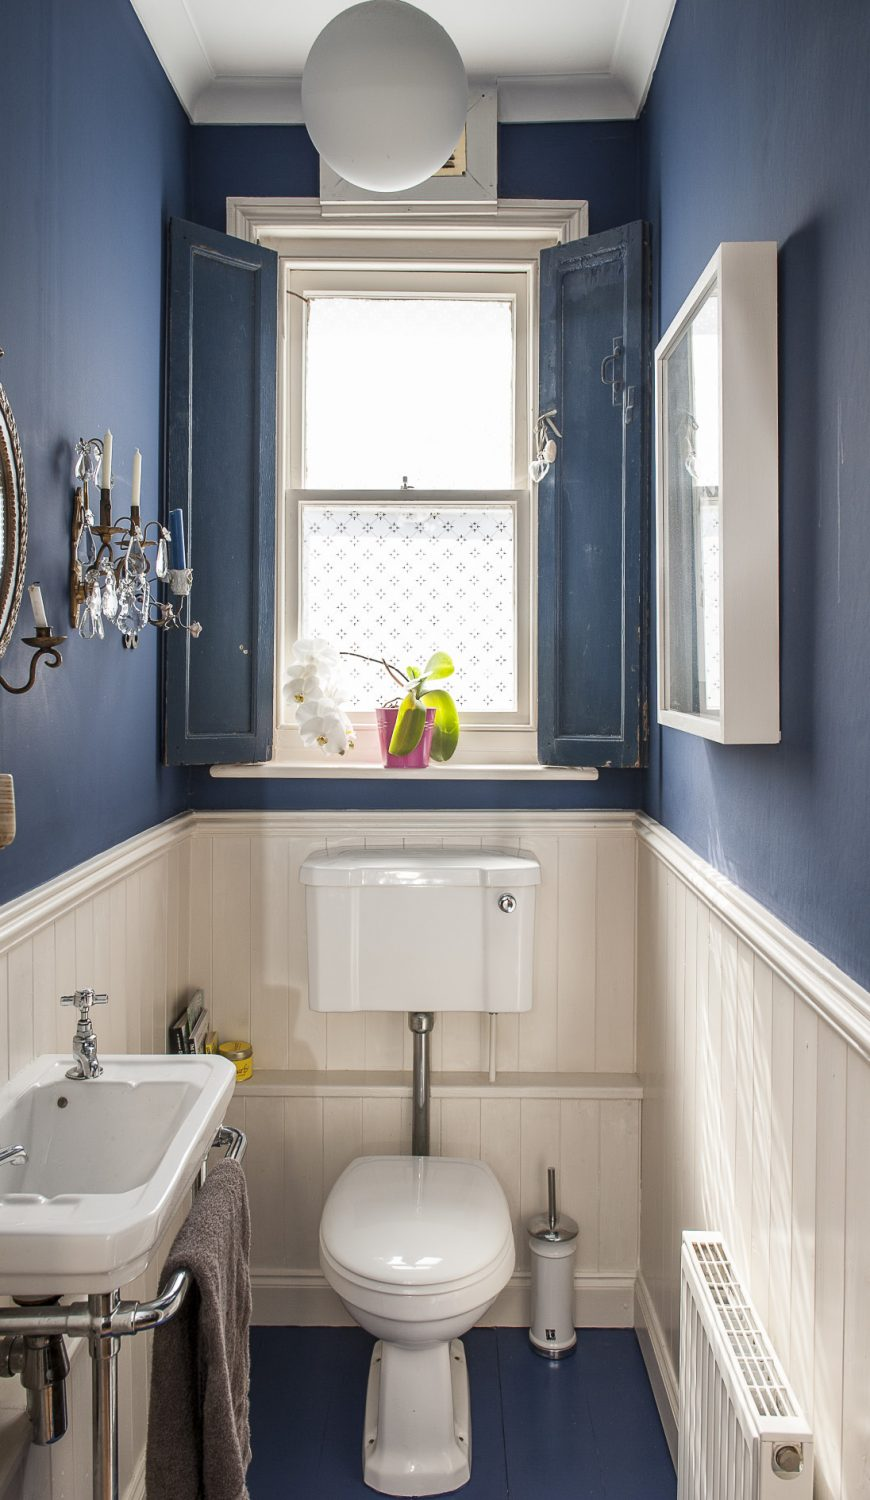 Nautical blue paint in the bathroom